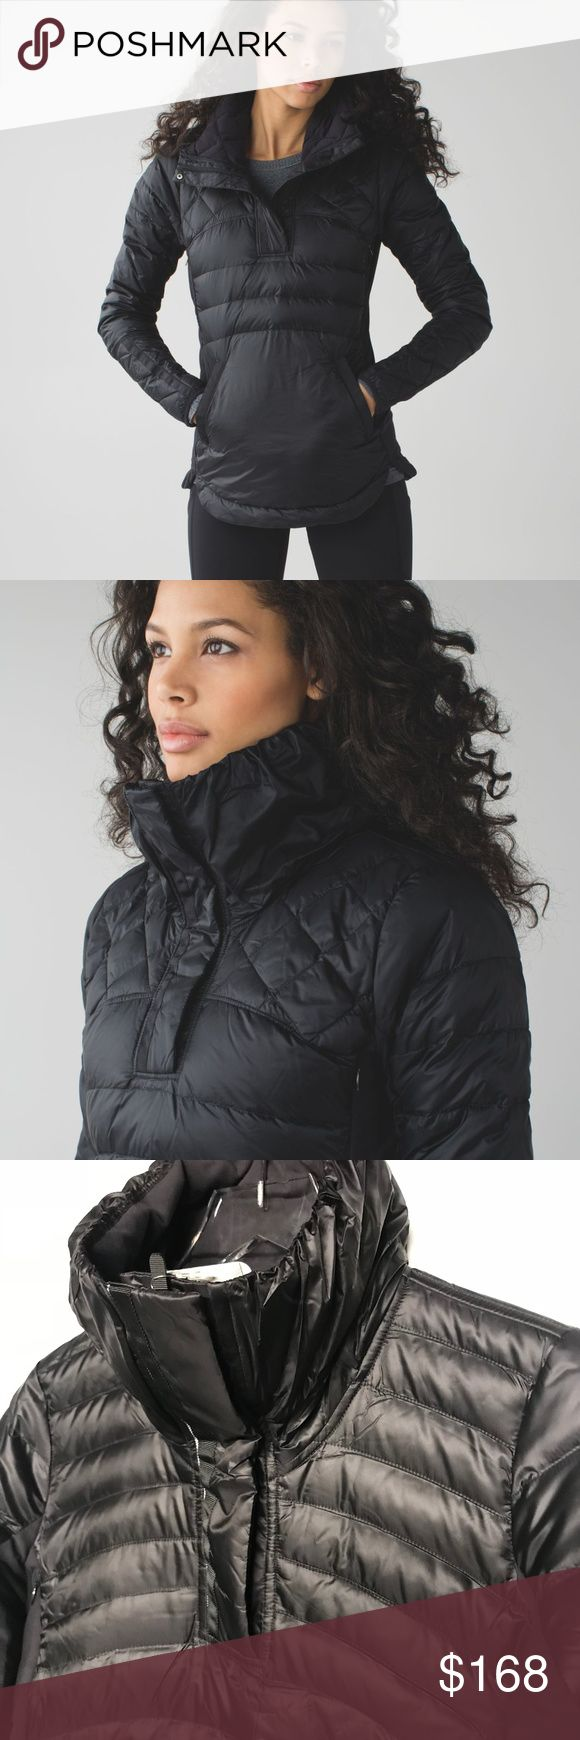 "NWT Lululemon Jacket - Sizes 4 6 12 This is a Lululemon goose feather down jacket named ""Down For A Run II Pullover"" in black. New with tags. Thumbholes and a large front pocket. Sizes 4, 6 and 12. lululemon athletica Jackets & Coats Puffers"